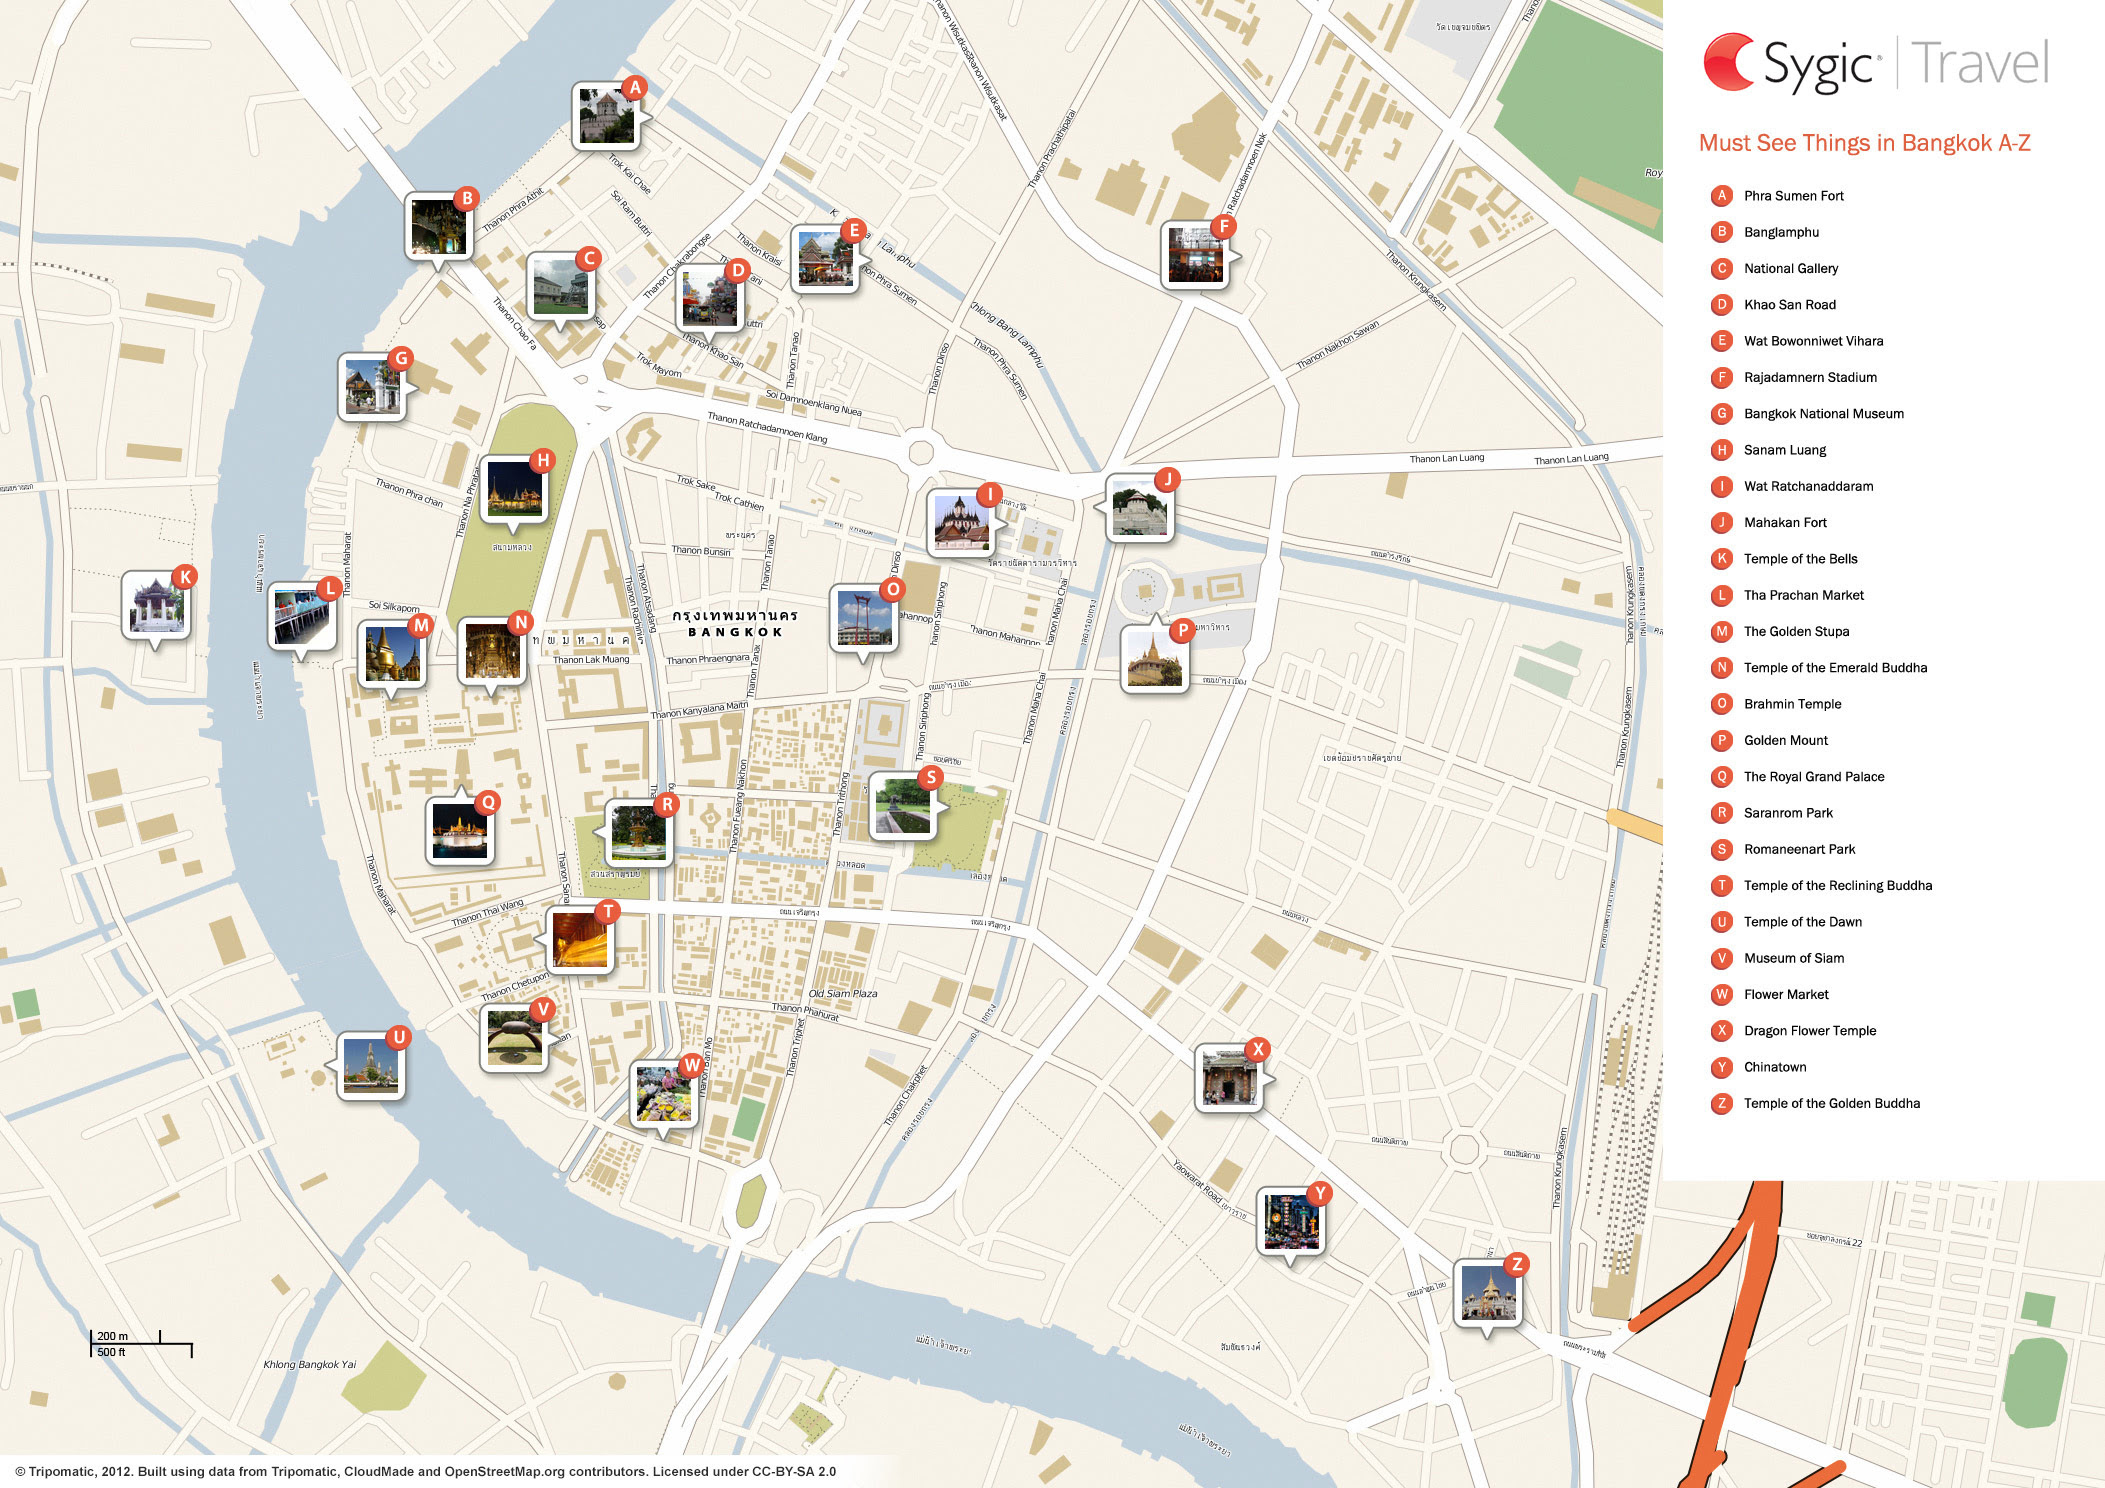 Complete Tourist Attractions Map of Bangkok Thailand,Bangkok Thailand Tourist Attractions Map,things to do in bangkok,Wat Arun the Grand Palace Wat Pho Rattanakosin island Wat Ratchanaddaram Wat Suthat Golden Mount Siam Square Dusit Palace National Museum Silom location map